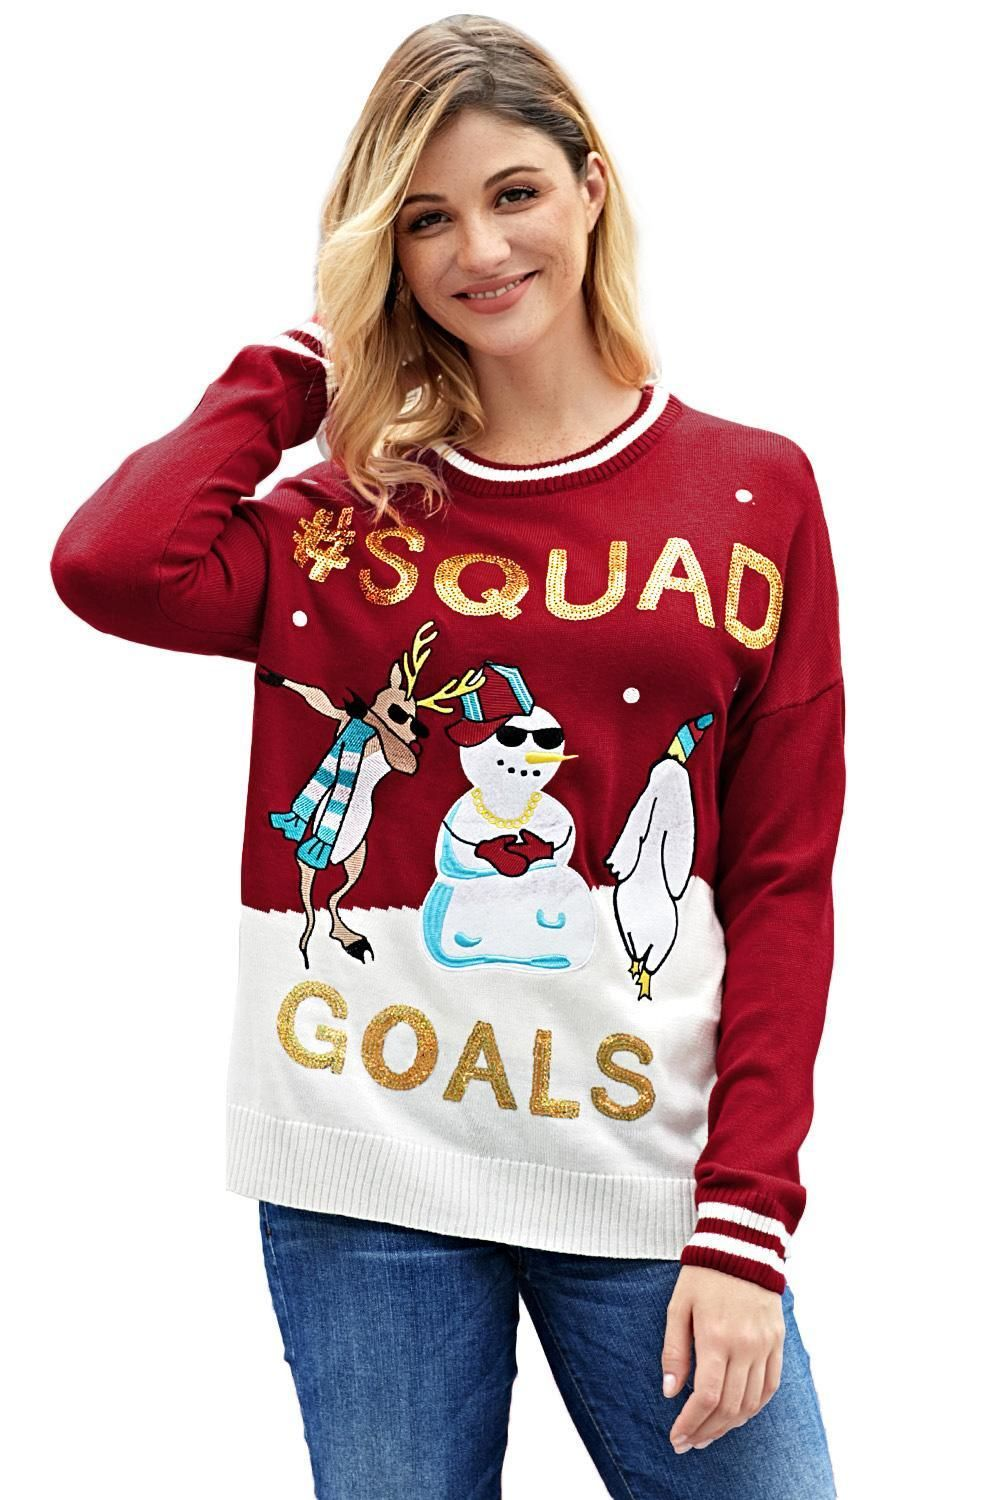 Red SQUAD GOALS Christmas Snowman Sweater Christmas